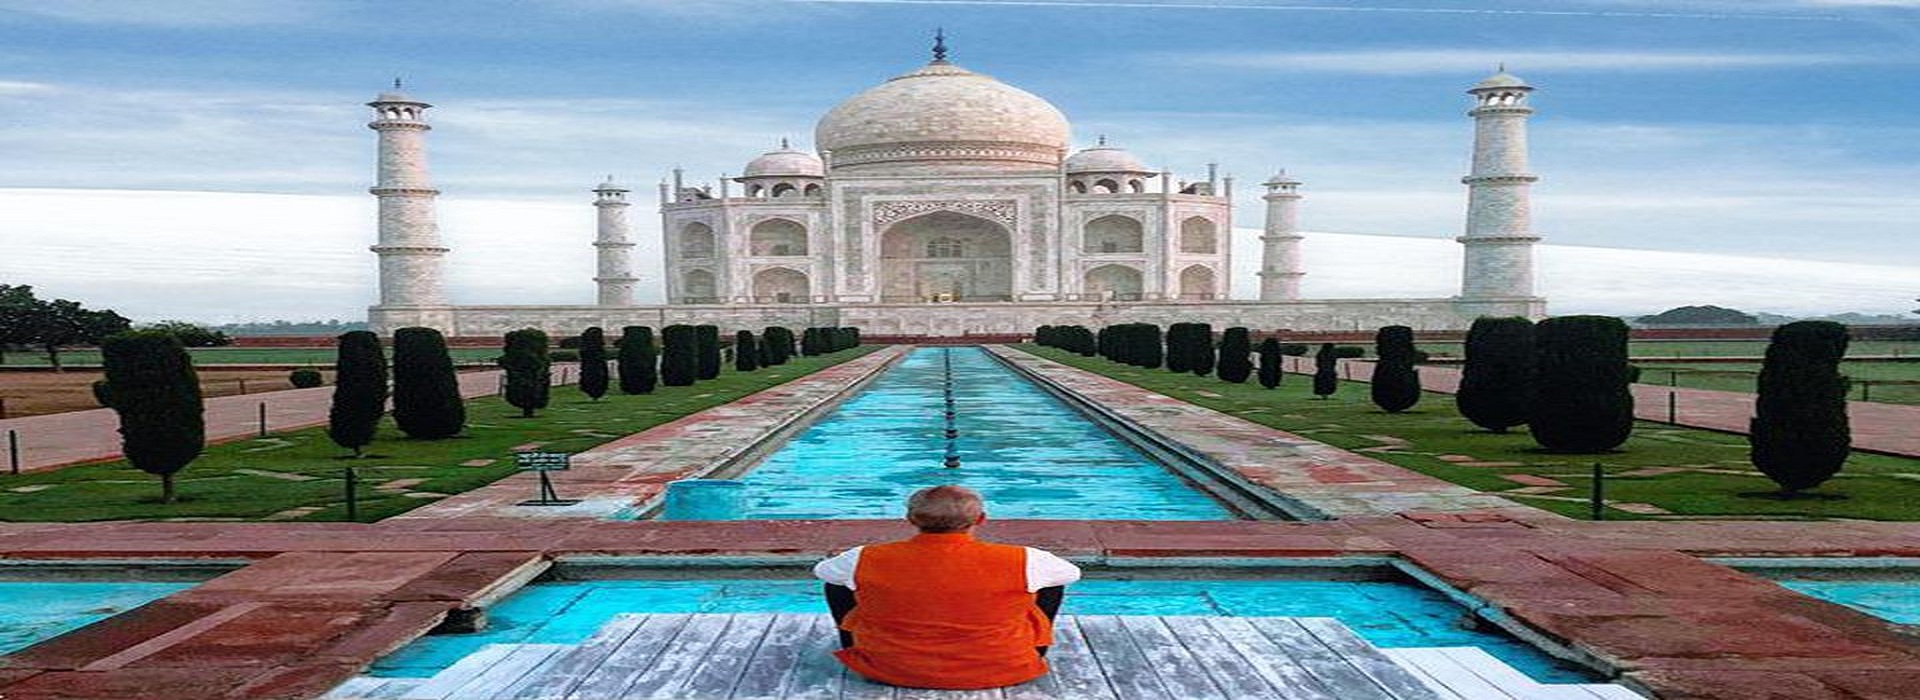 Tips for Planning a Great Taj Mahal Day Tour